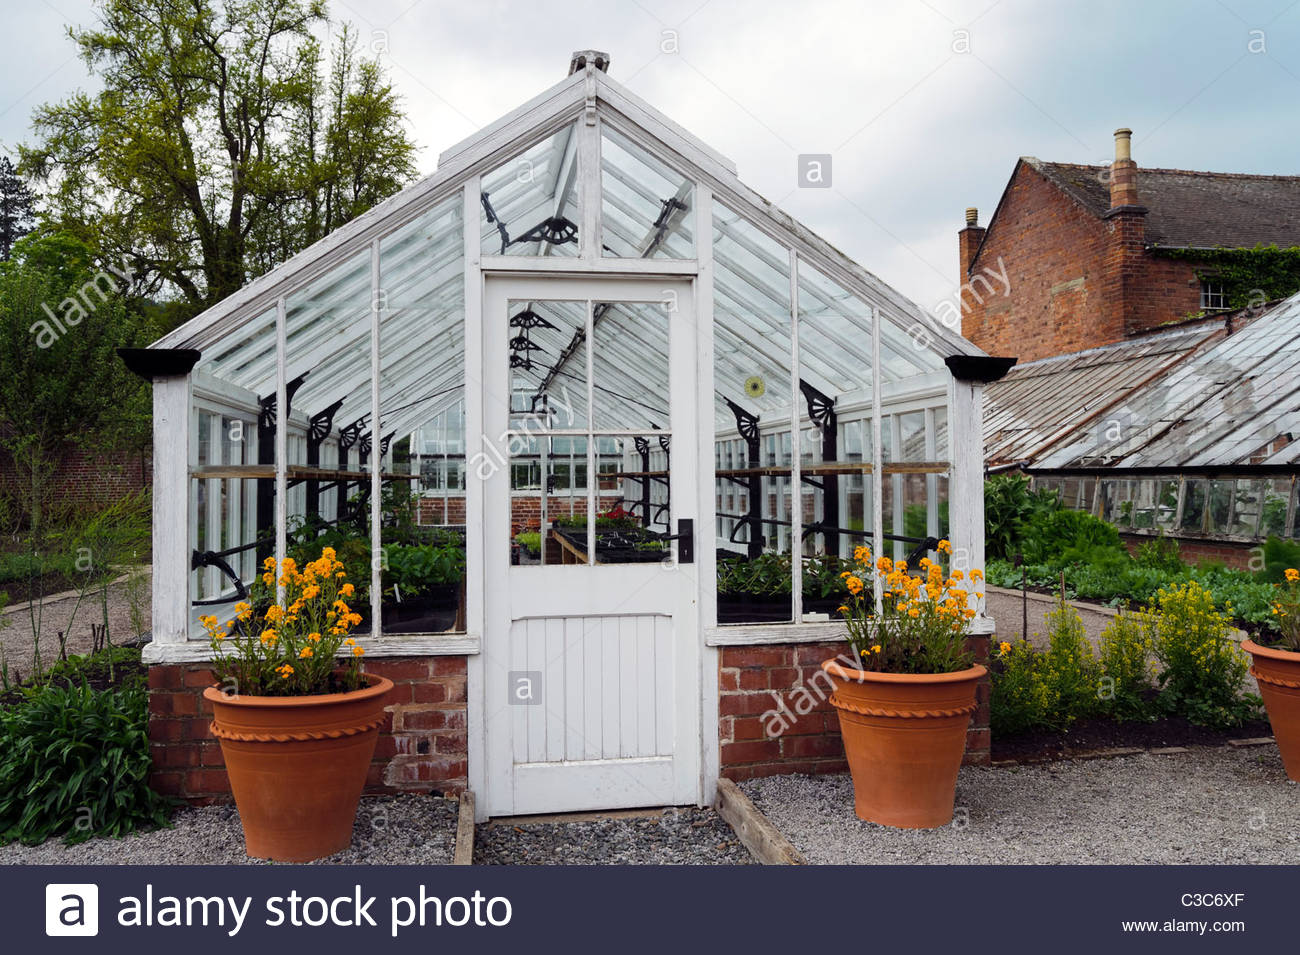 Old wooden greenhouse built on brick base, UK. Victorian glasshouse painted white. - Stock Image